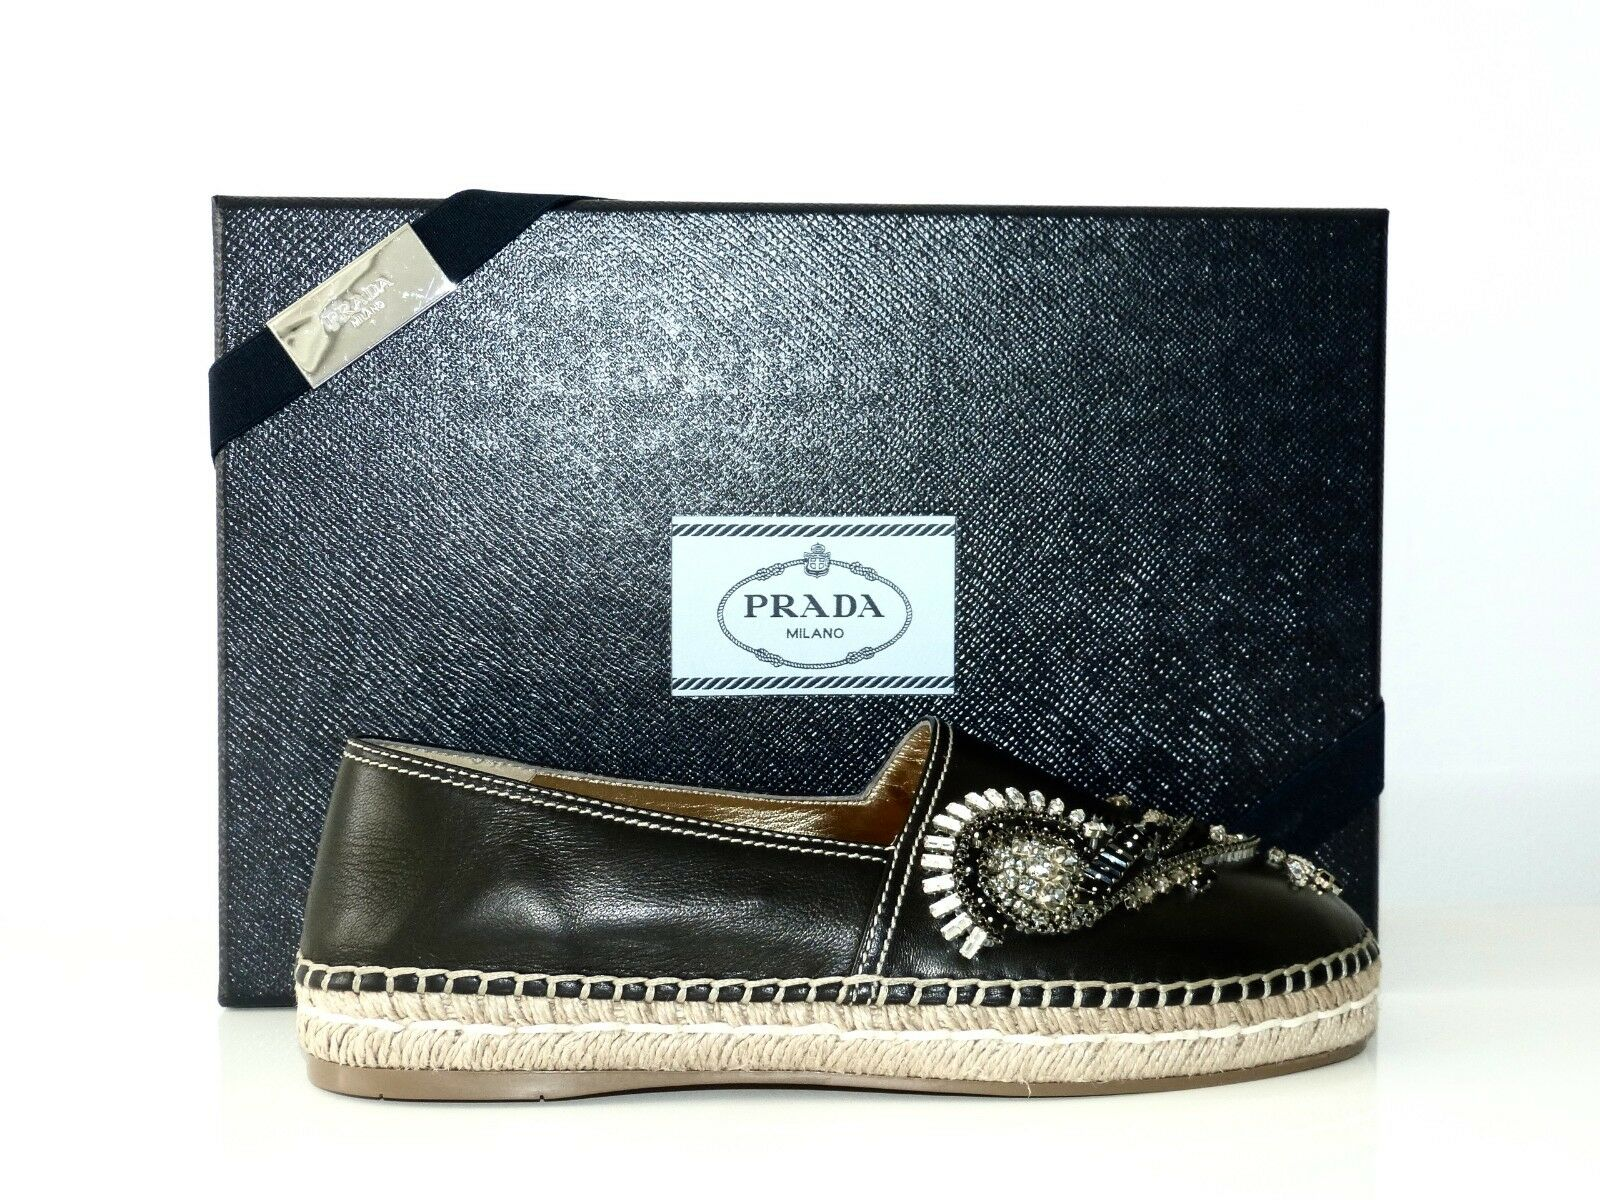 PRADA SCHUHE ESPANDRILLES SCHMUCKSTEINE SHOES NEU/NEW BLACK EU:38   NEU/NEW SHOES f9cb89